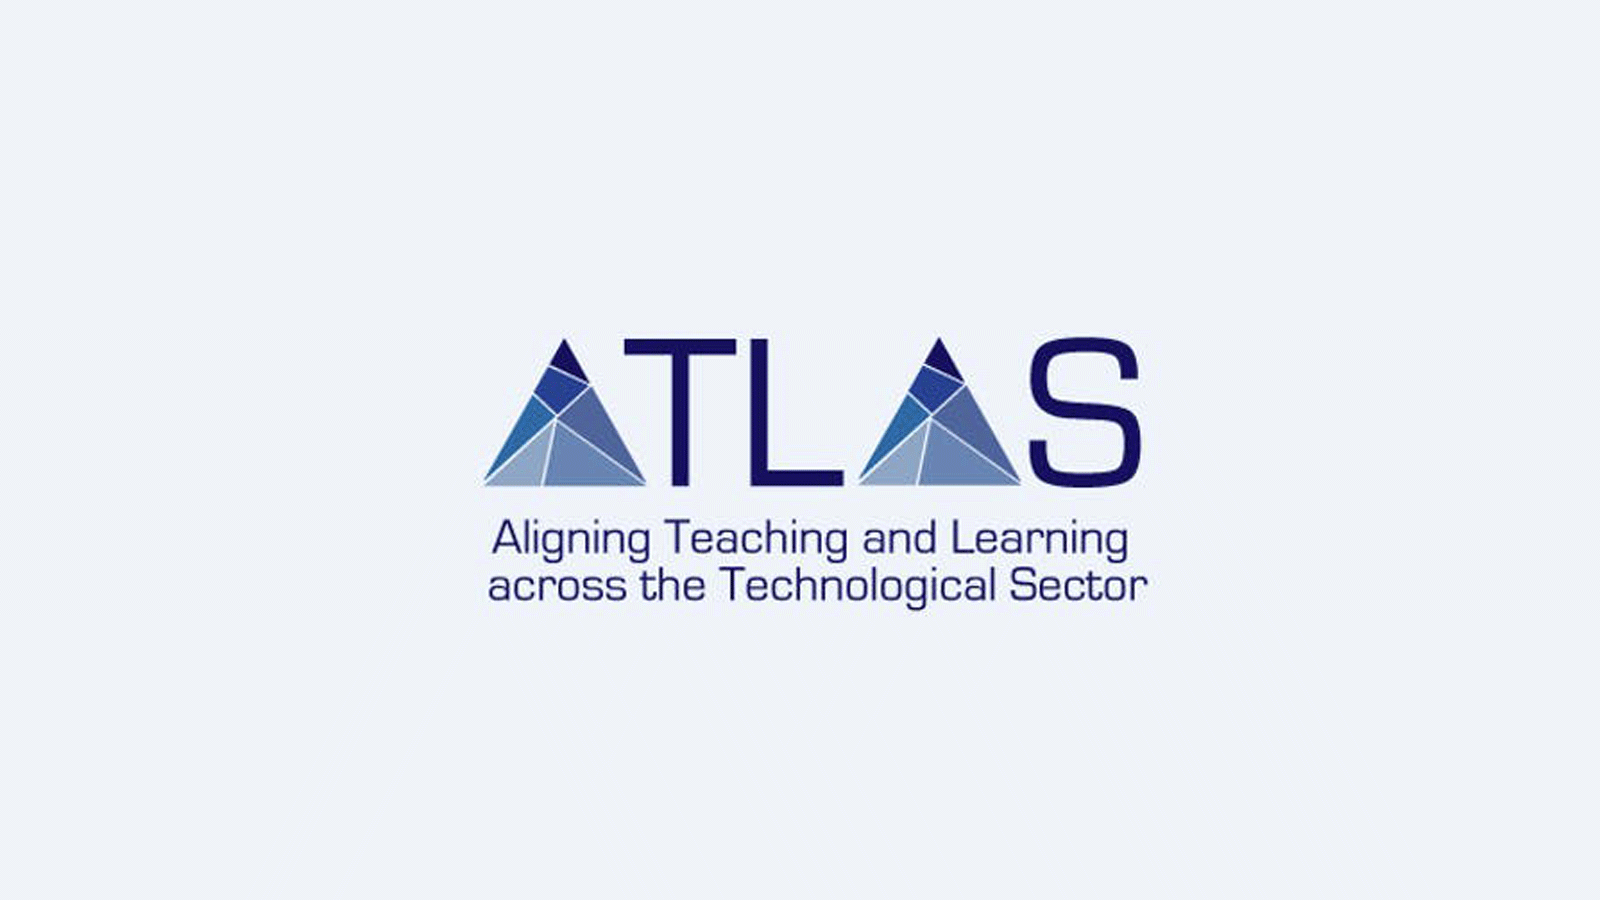 Aligning Teaching and Learning Across the Technological Sector (ATLAS)